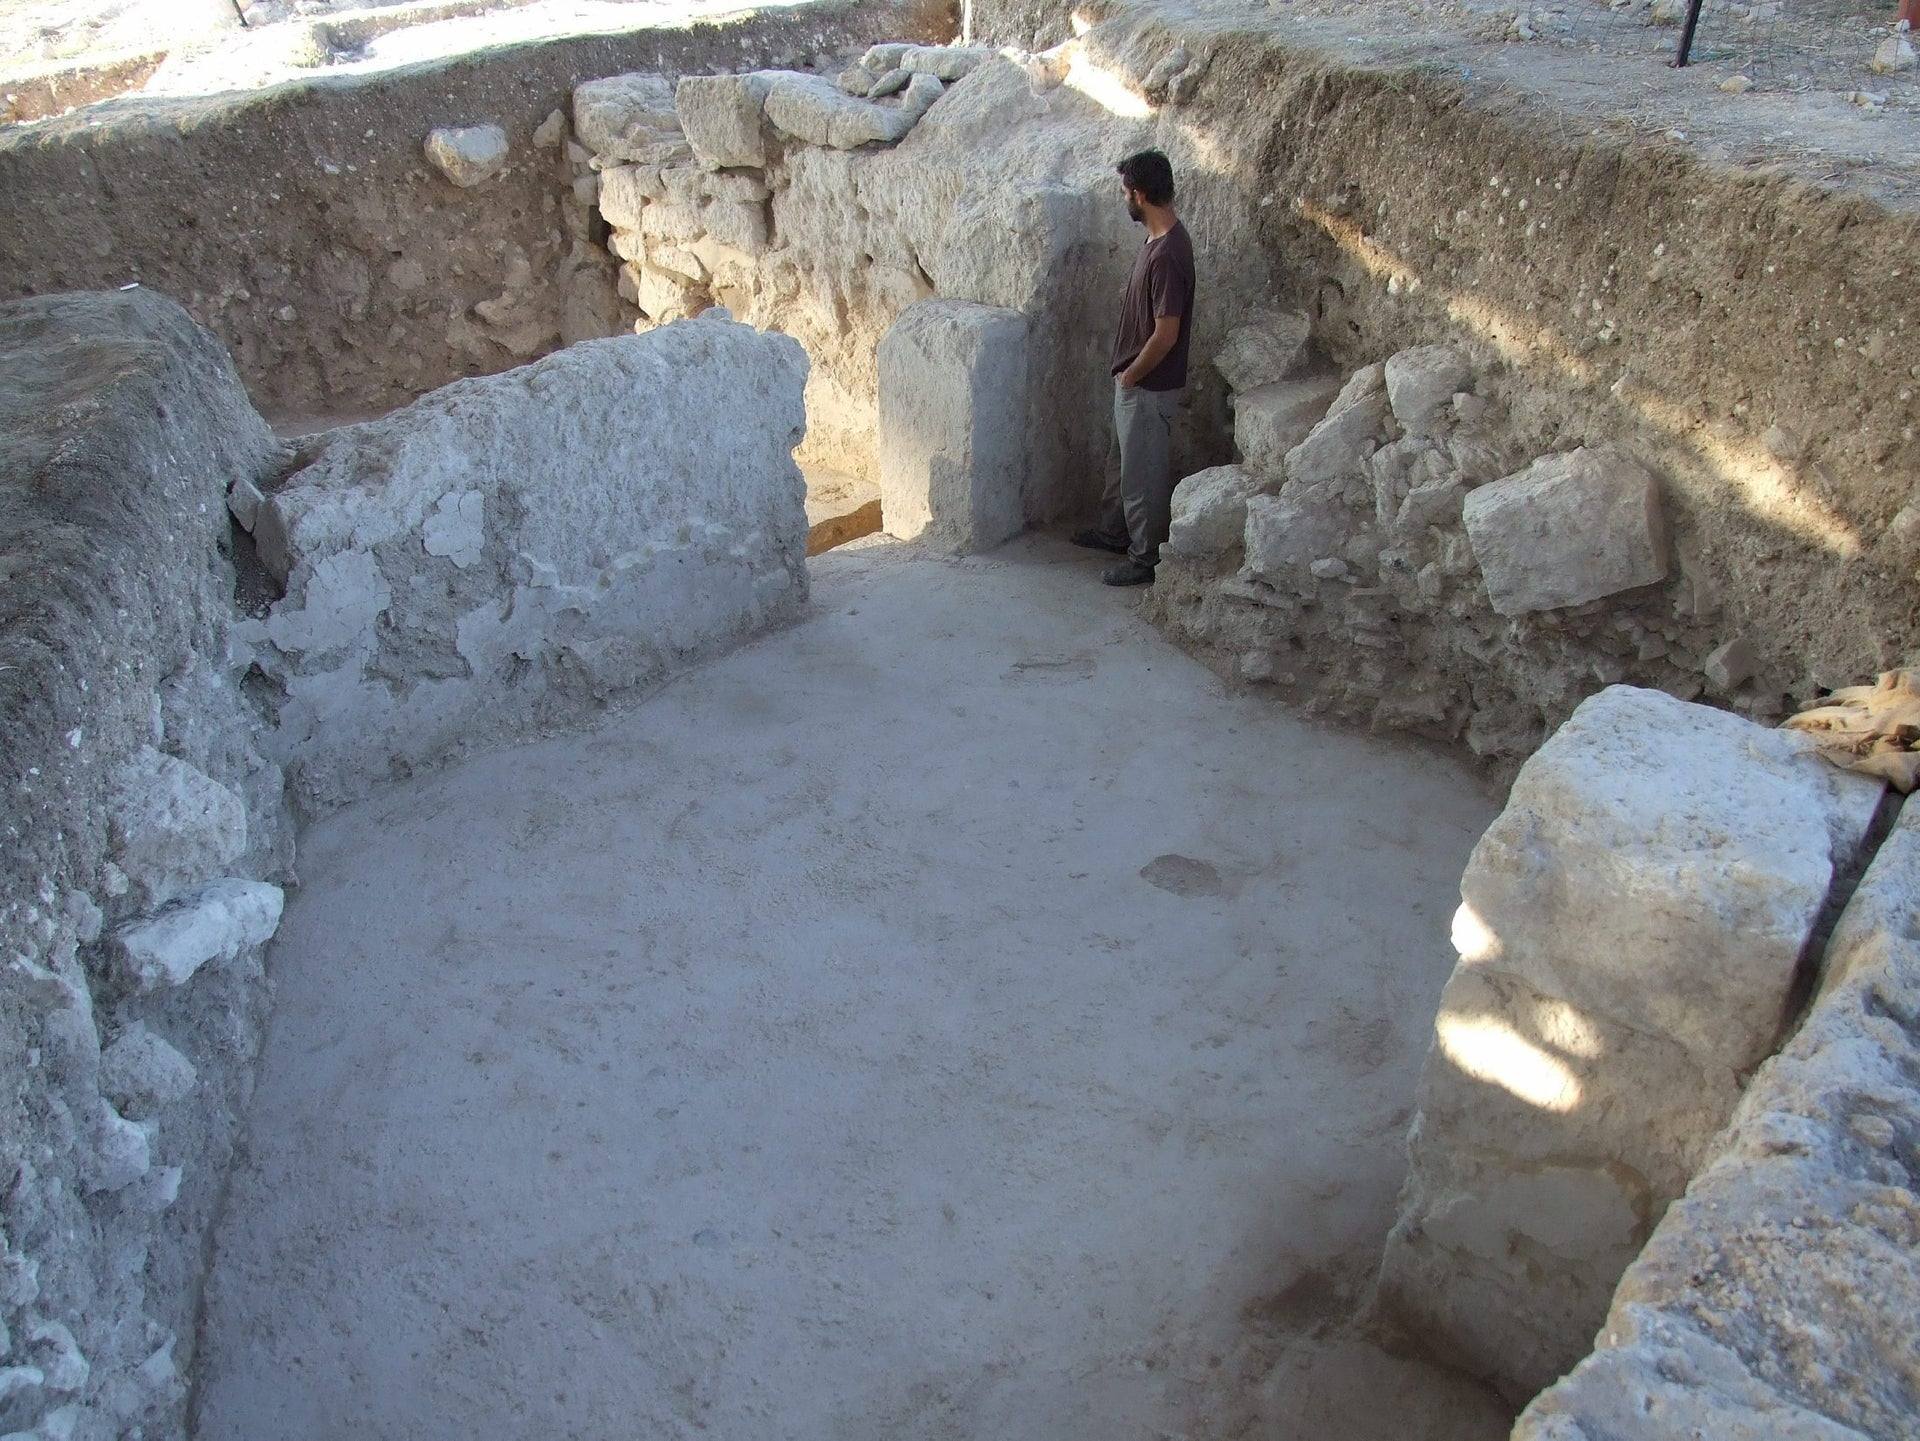 Rooms in the large house discovered at Othnay, Megiddo